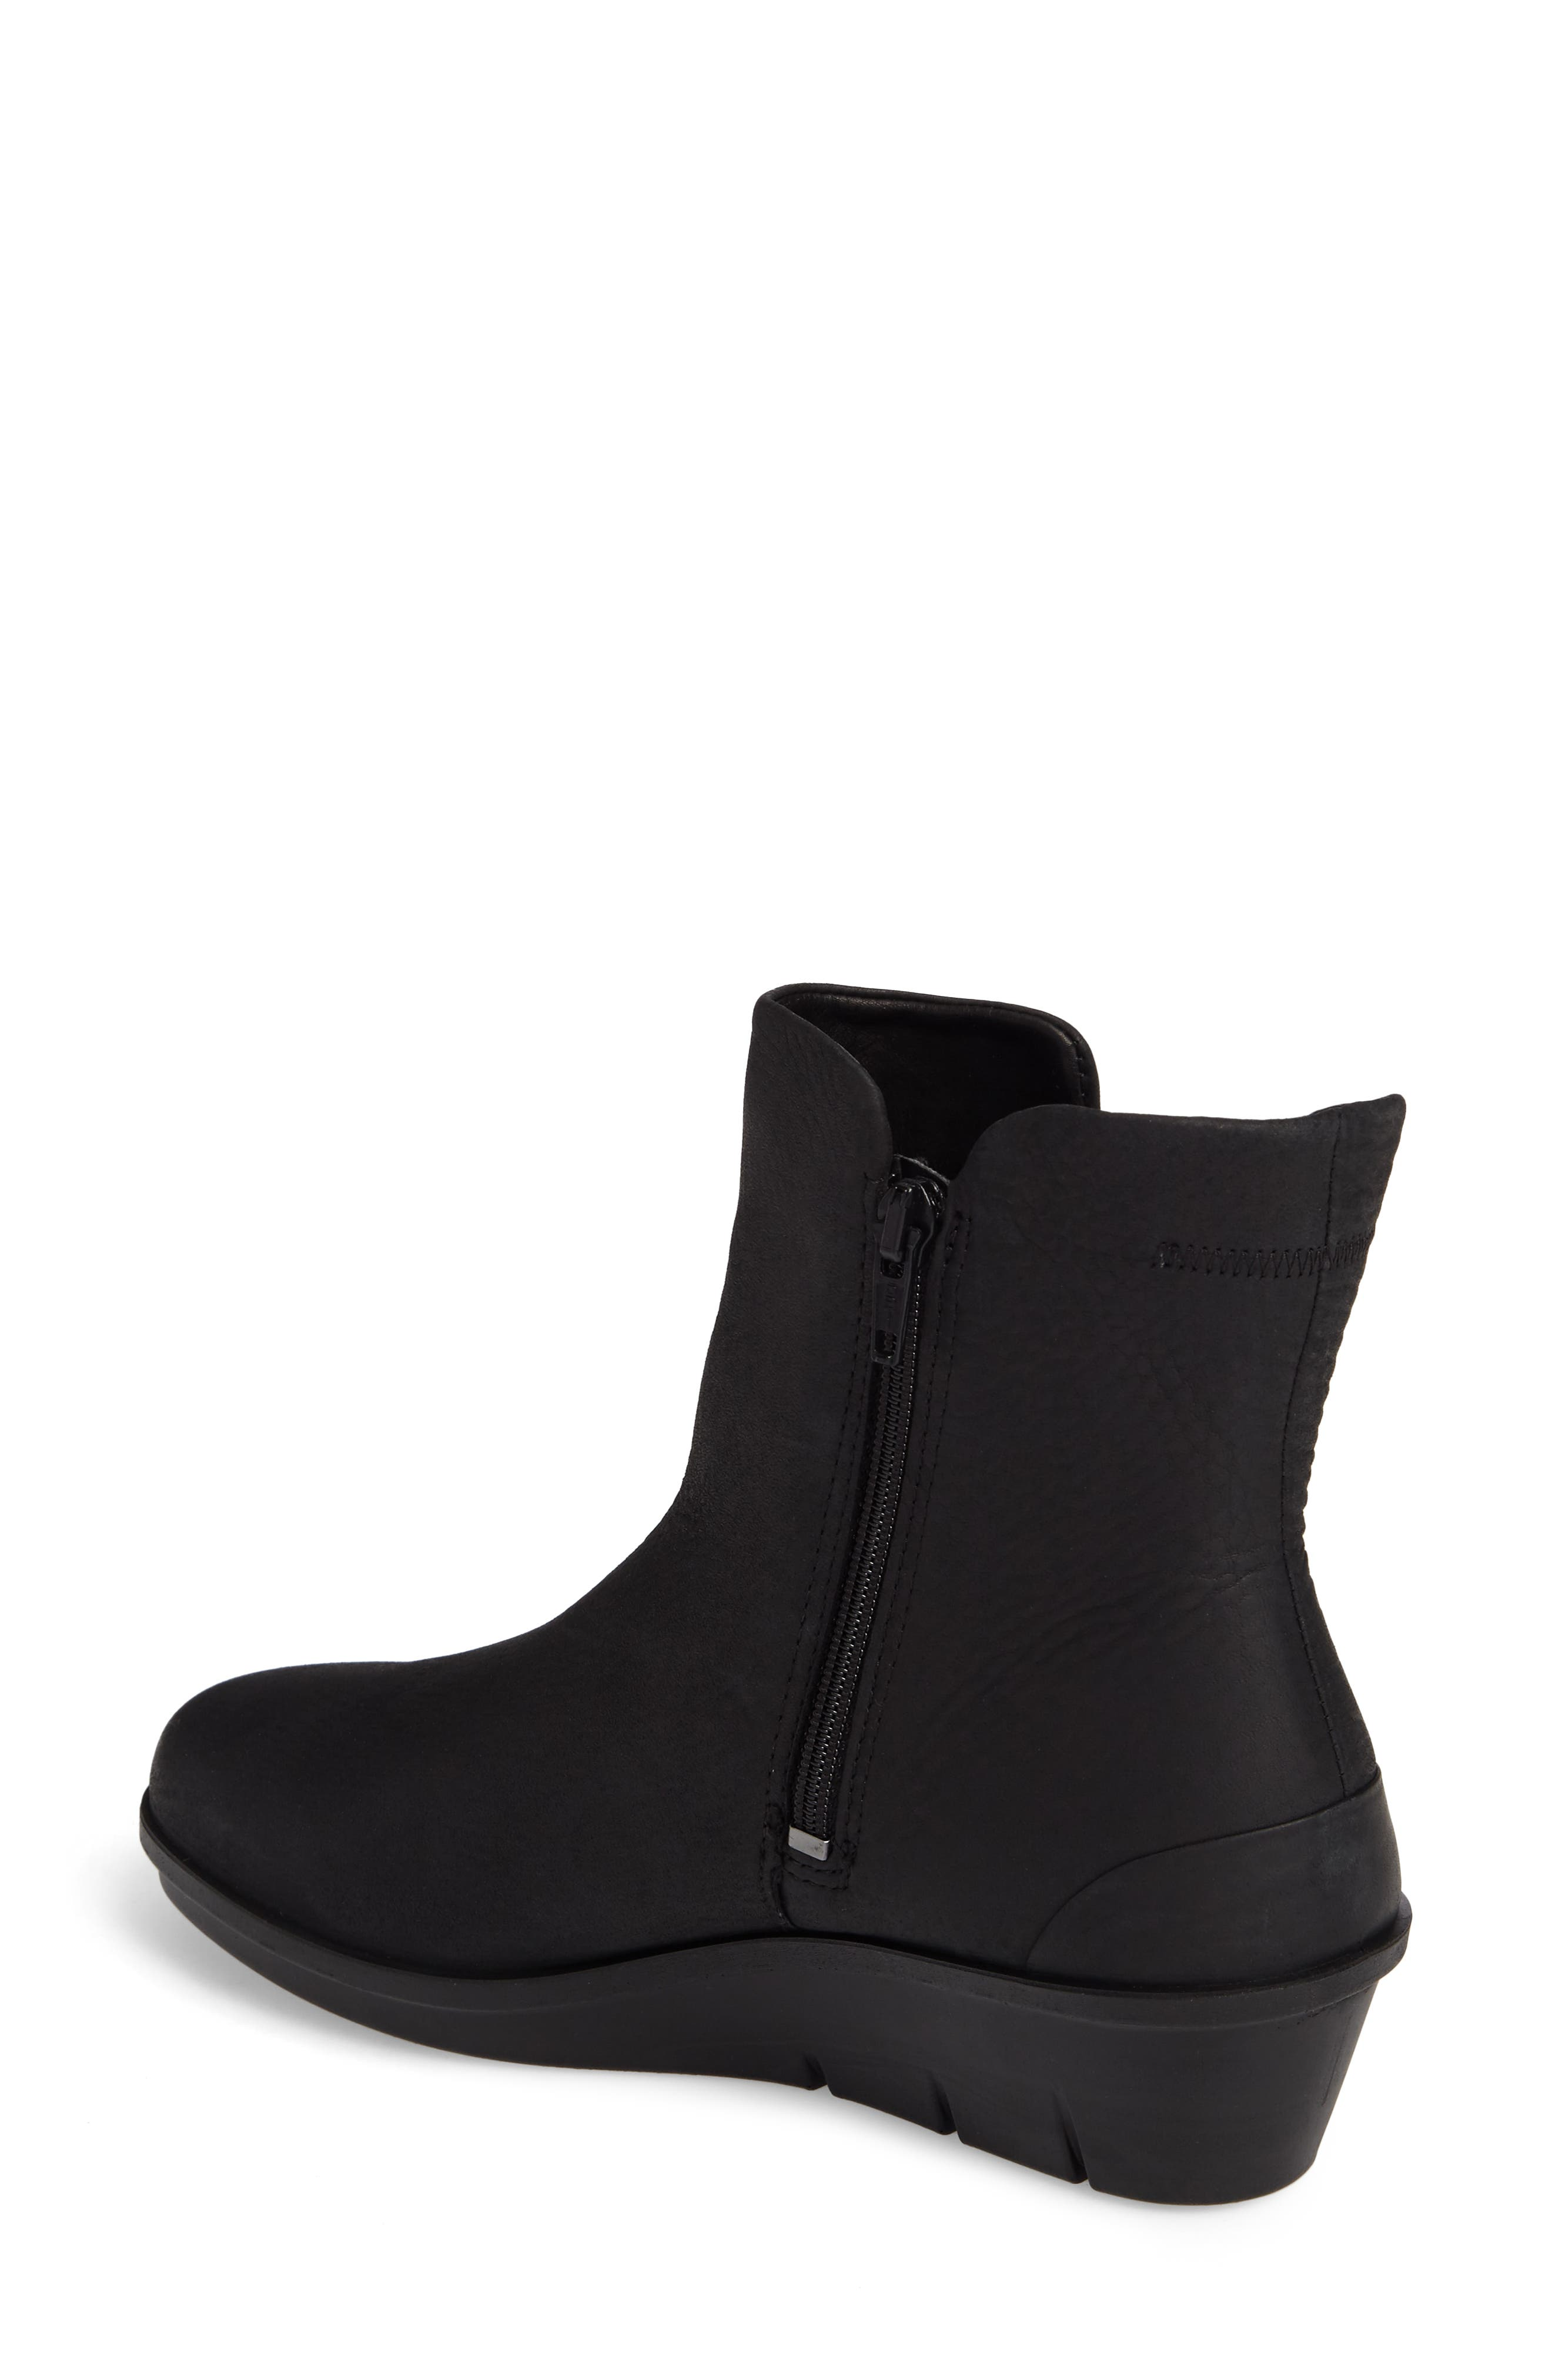 Skyler Notched Wedge Bootie,                             Alternate thumbnail 2, color,                             Black Leather